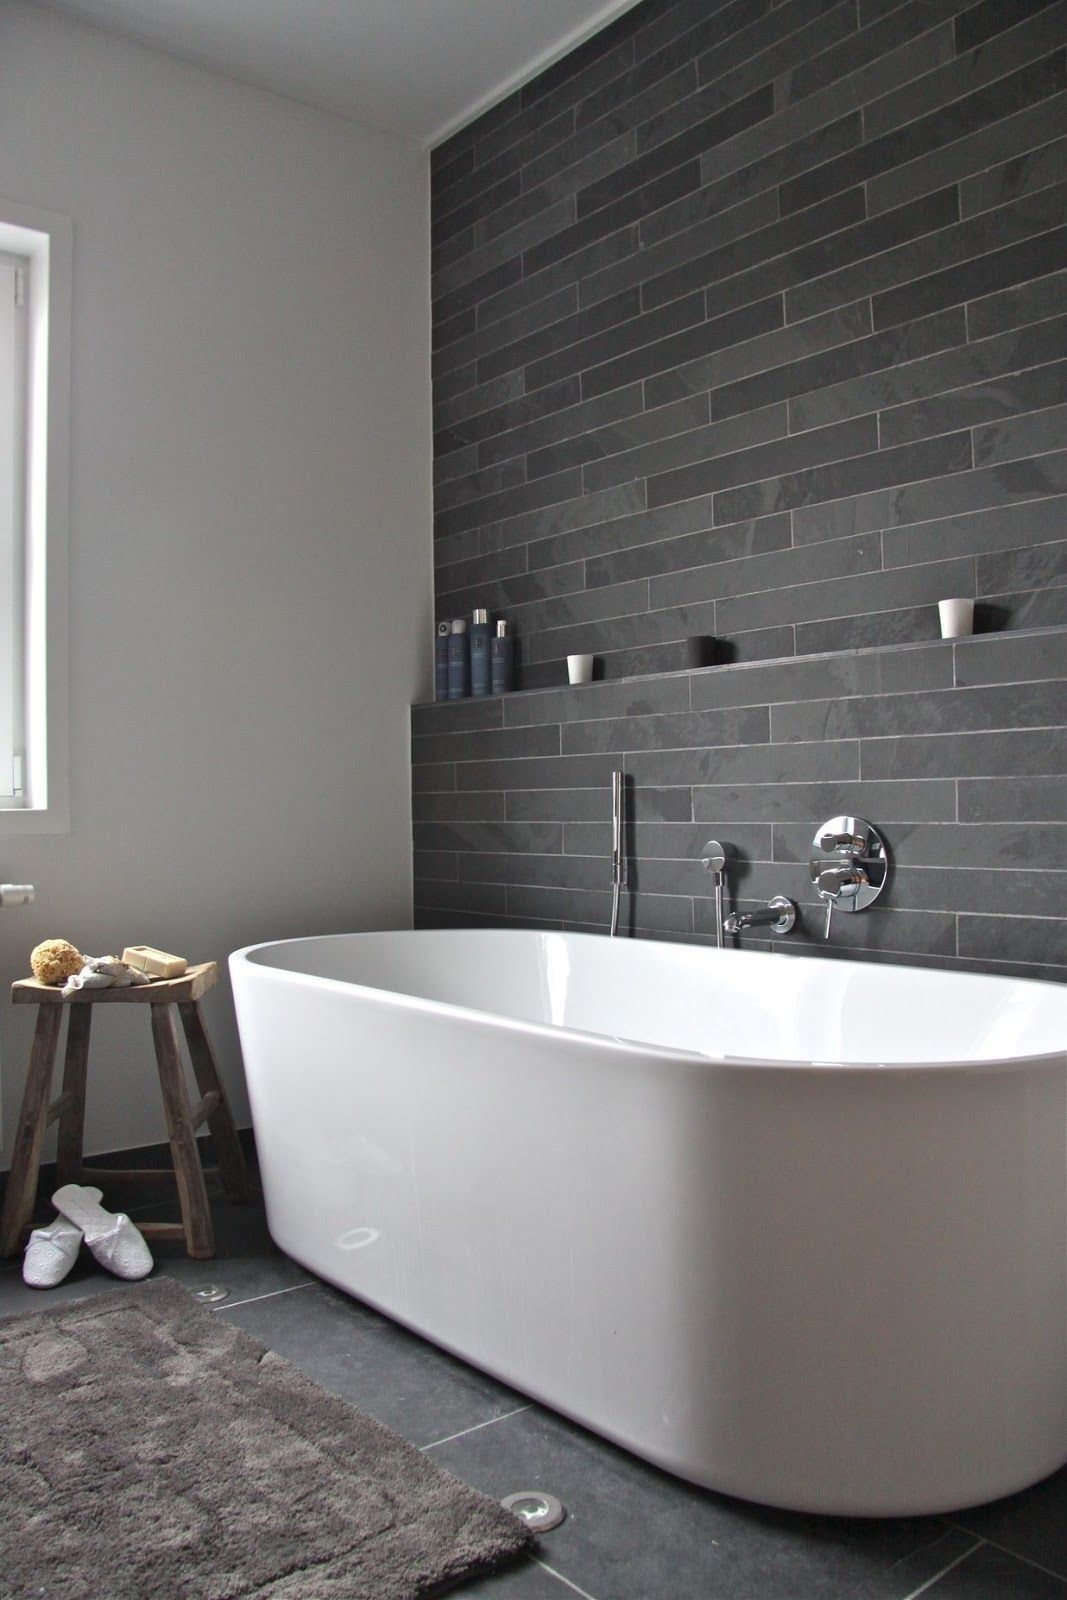 Schöne Moderne Bäder Freestanding Or Built In Tub Which Is Right For You